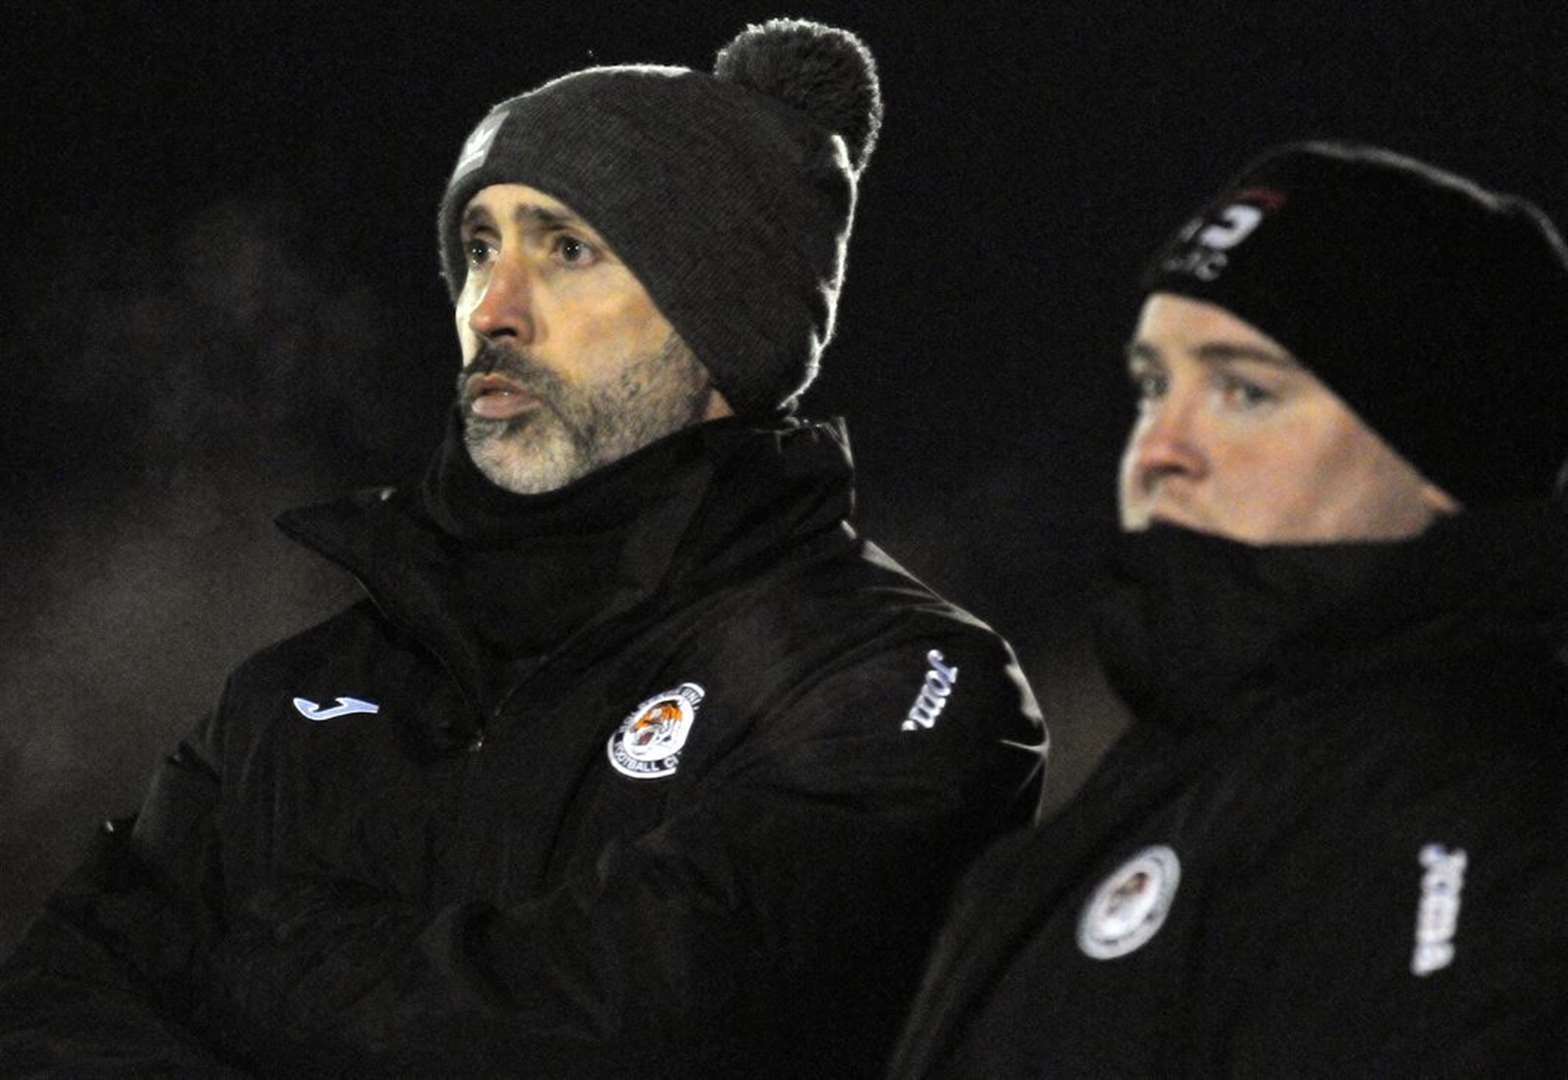 FOOTBALL: Tigers boss unhappy over floodlight failure